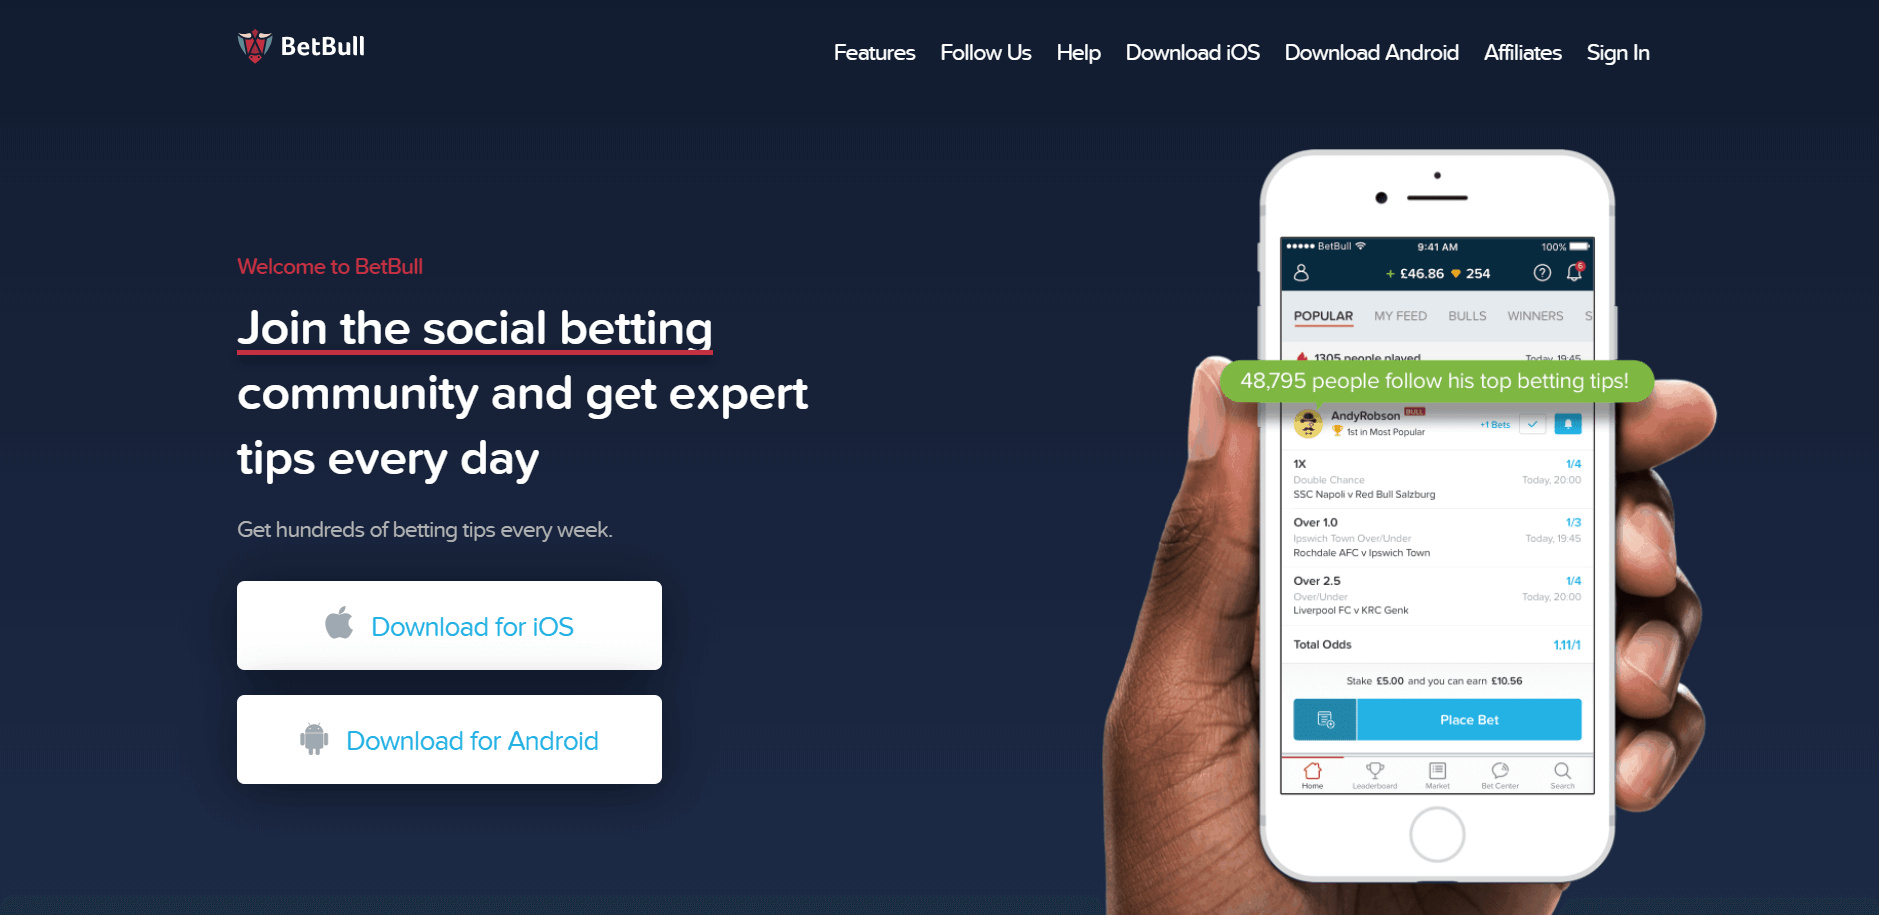 Betbull social betting app homepage